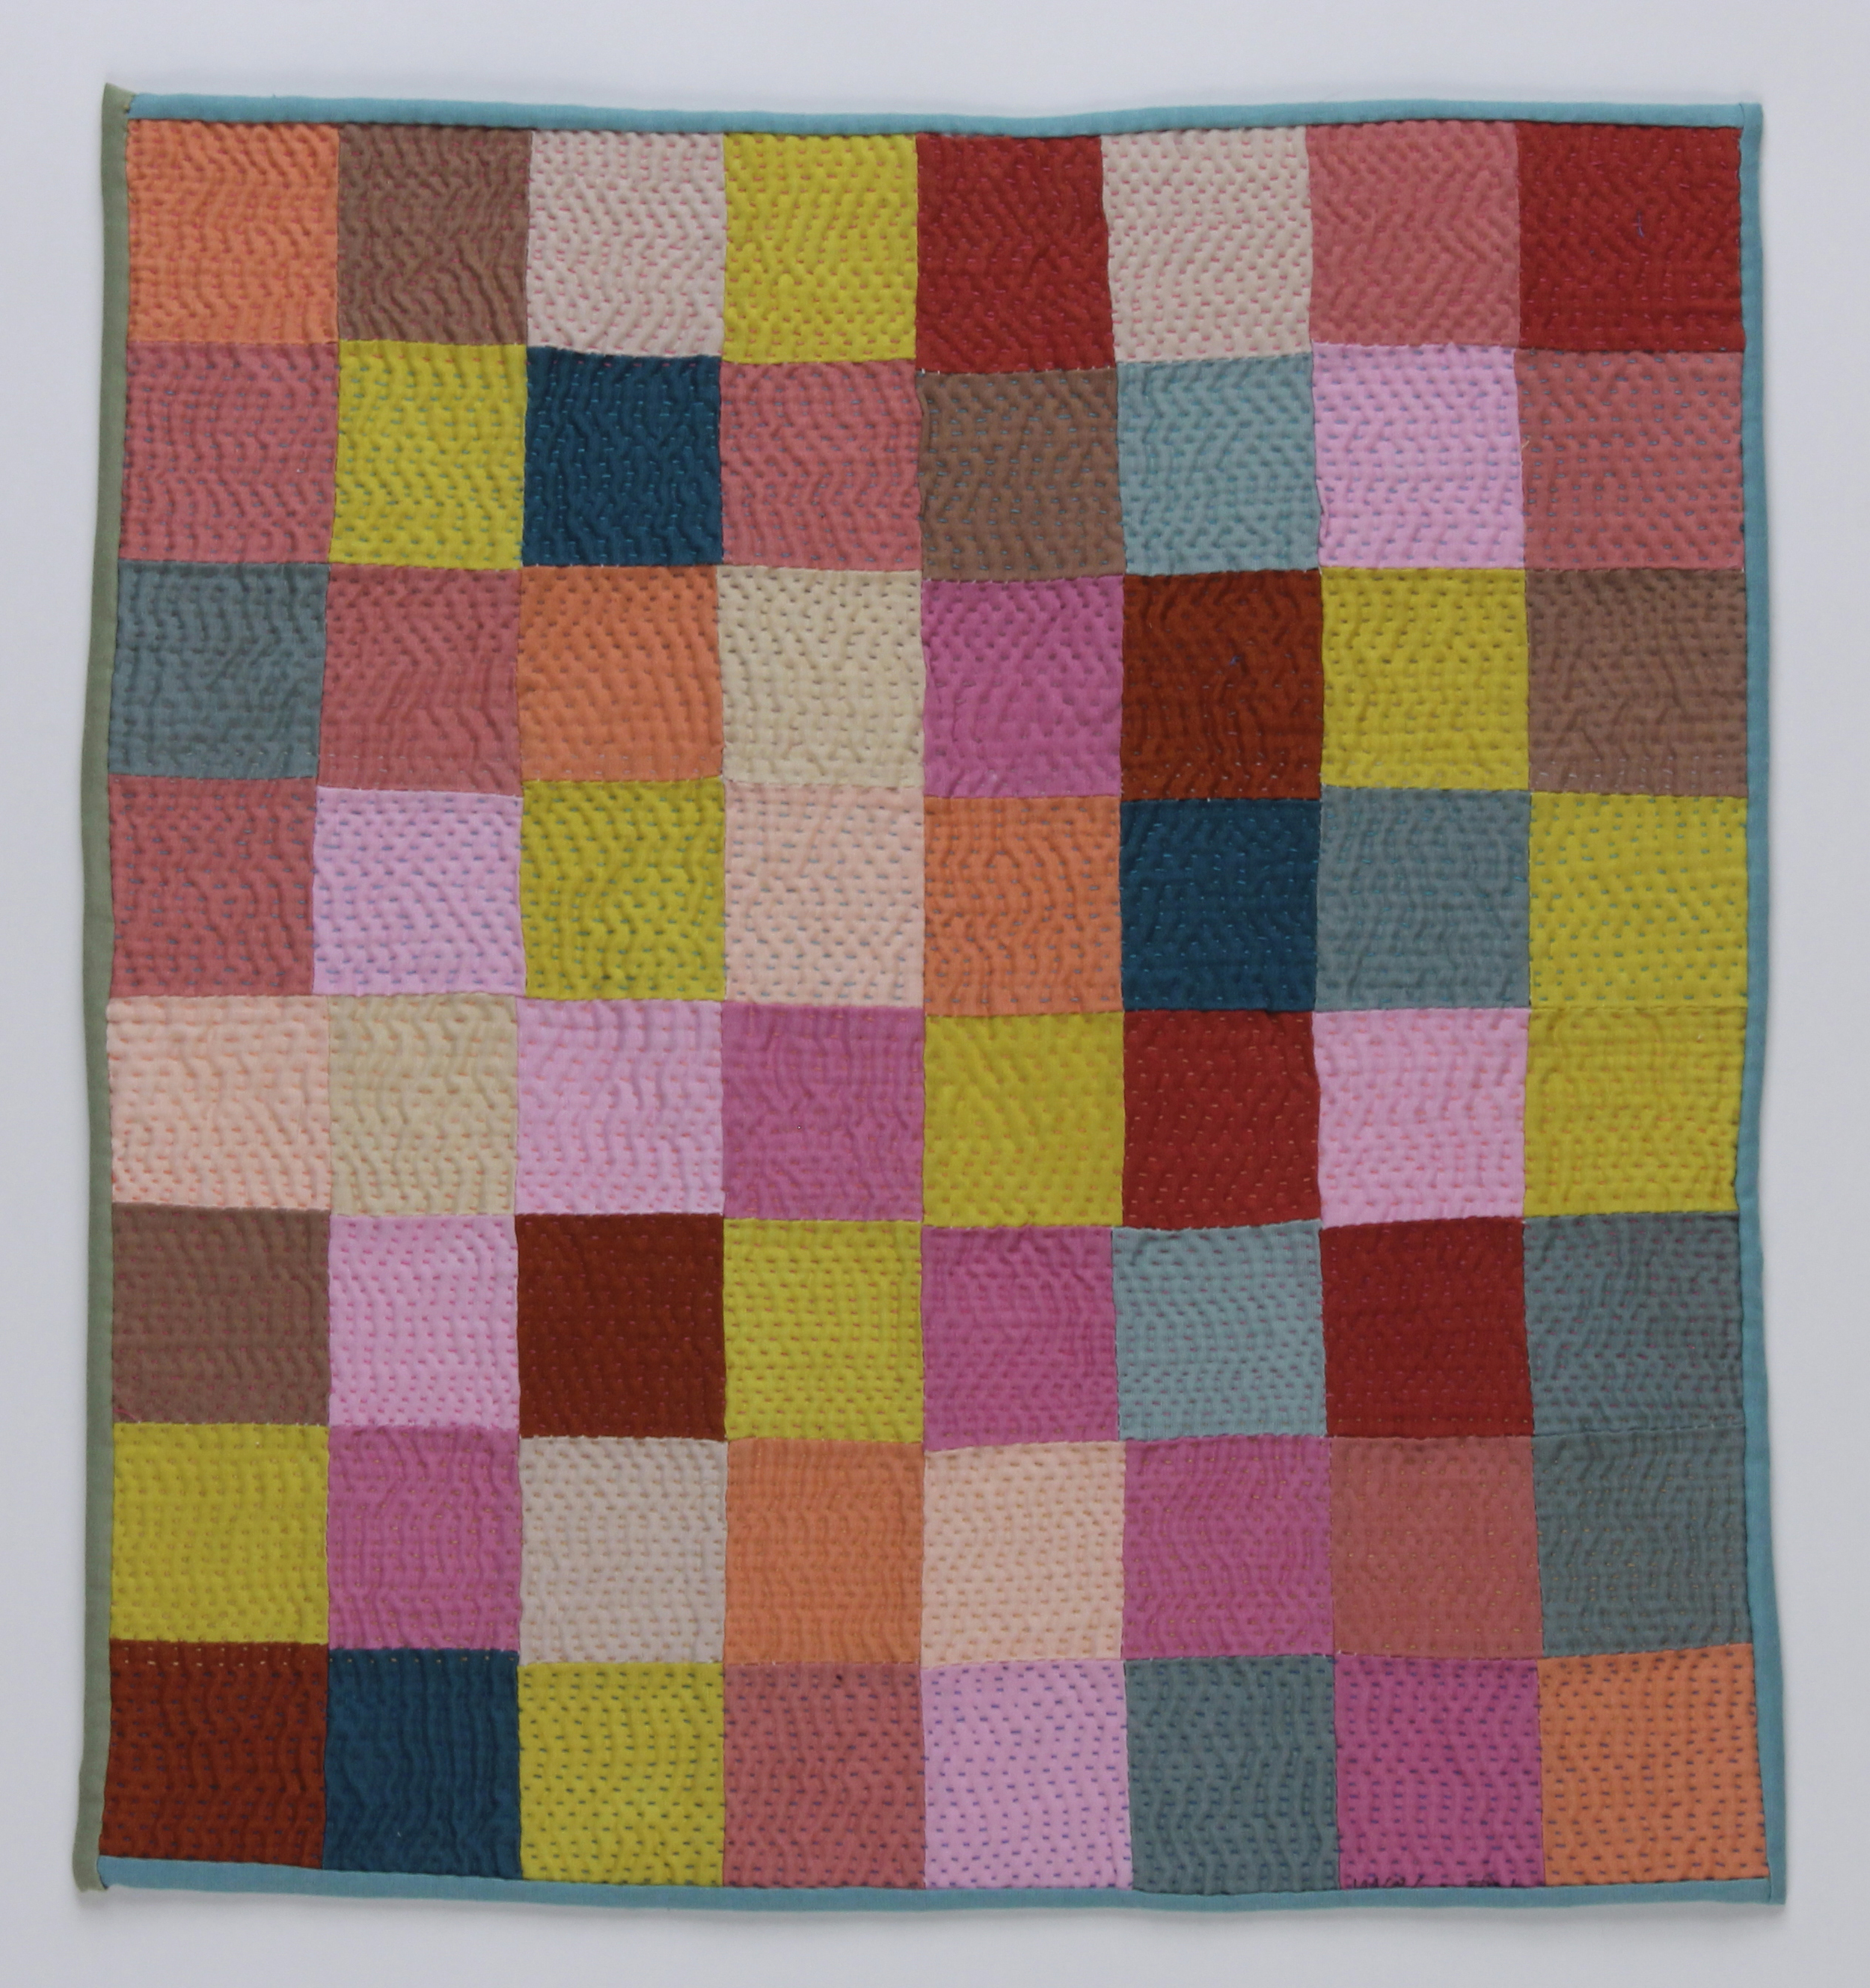 color study II, dyed fabric, pieced and quilted by hand, 2015